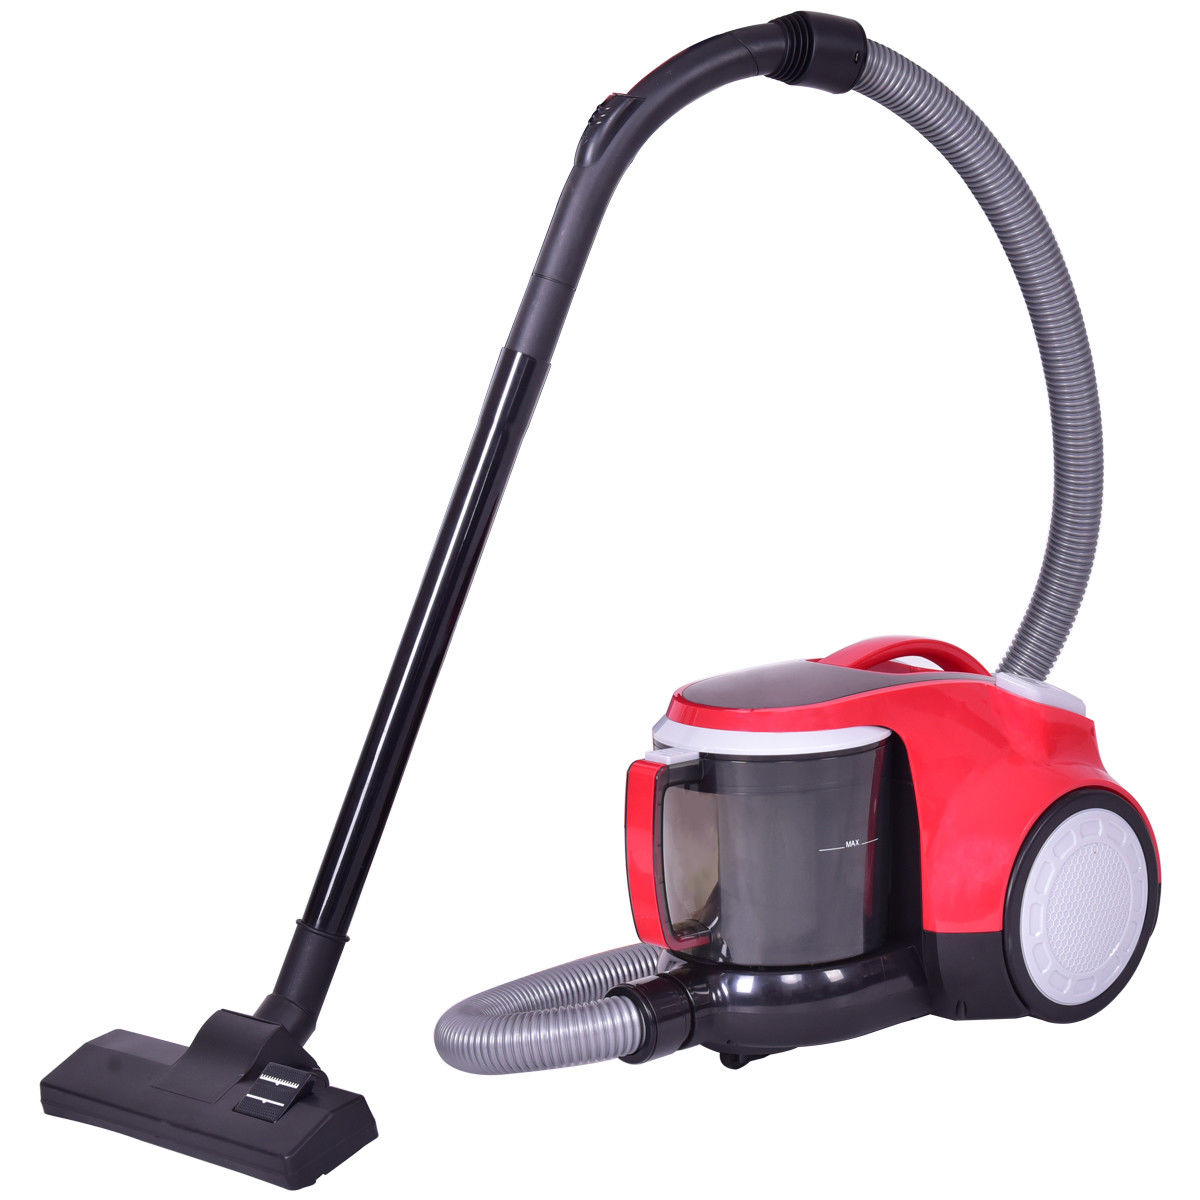 Costway Vacuum Cleaner Canister Bagless Cord Rewind Carpet Hard Floor w Washable Filter